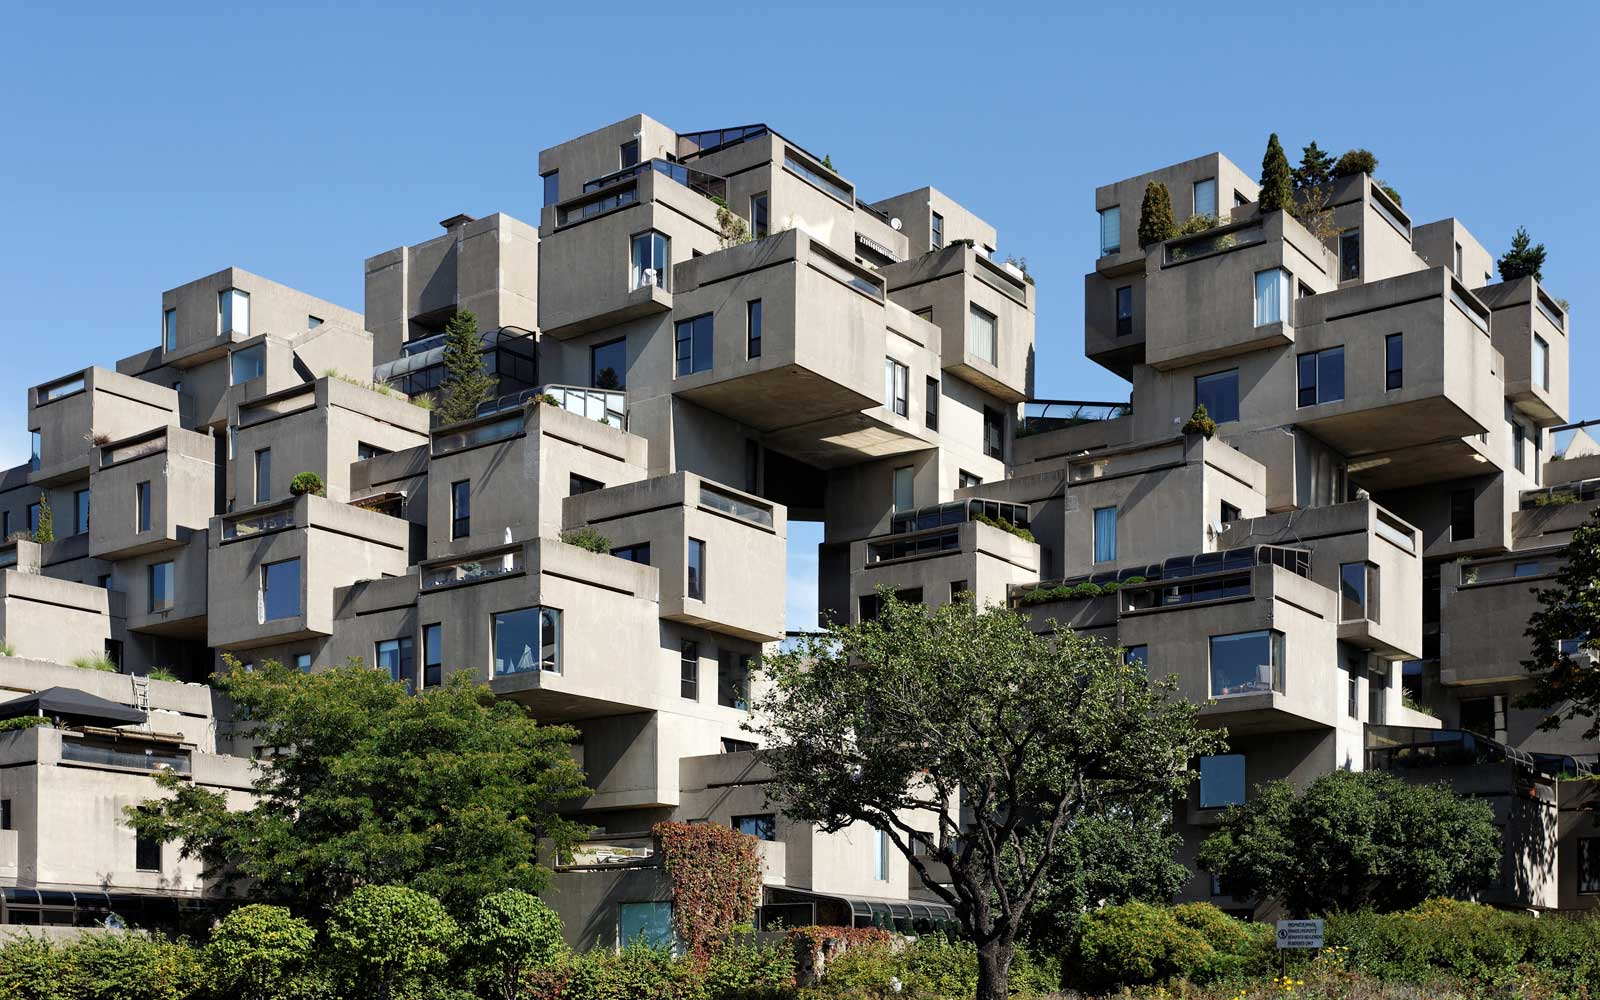 Habitat 67, the landmark housing complex originally built for the 1967 Montreal World's Fair